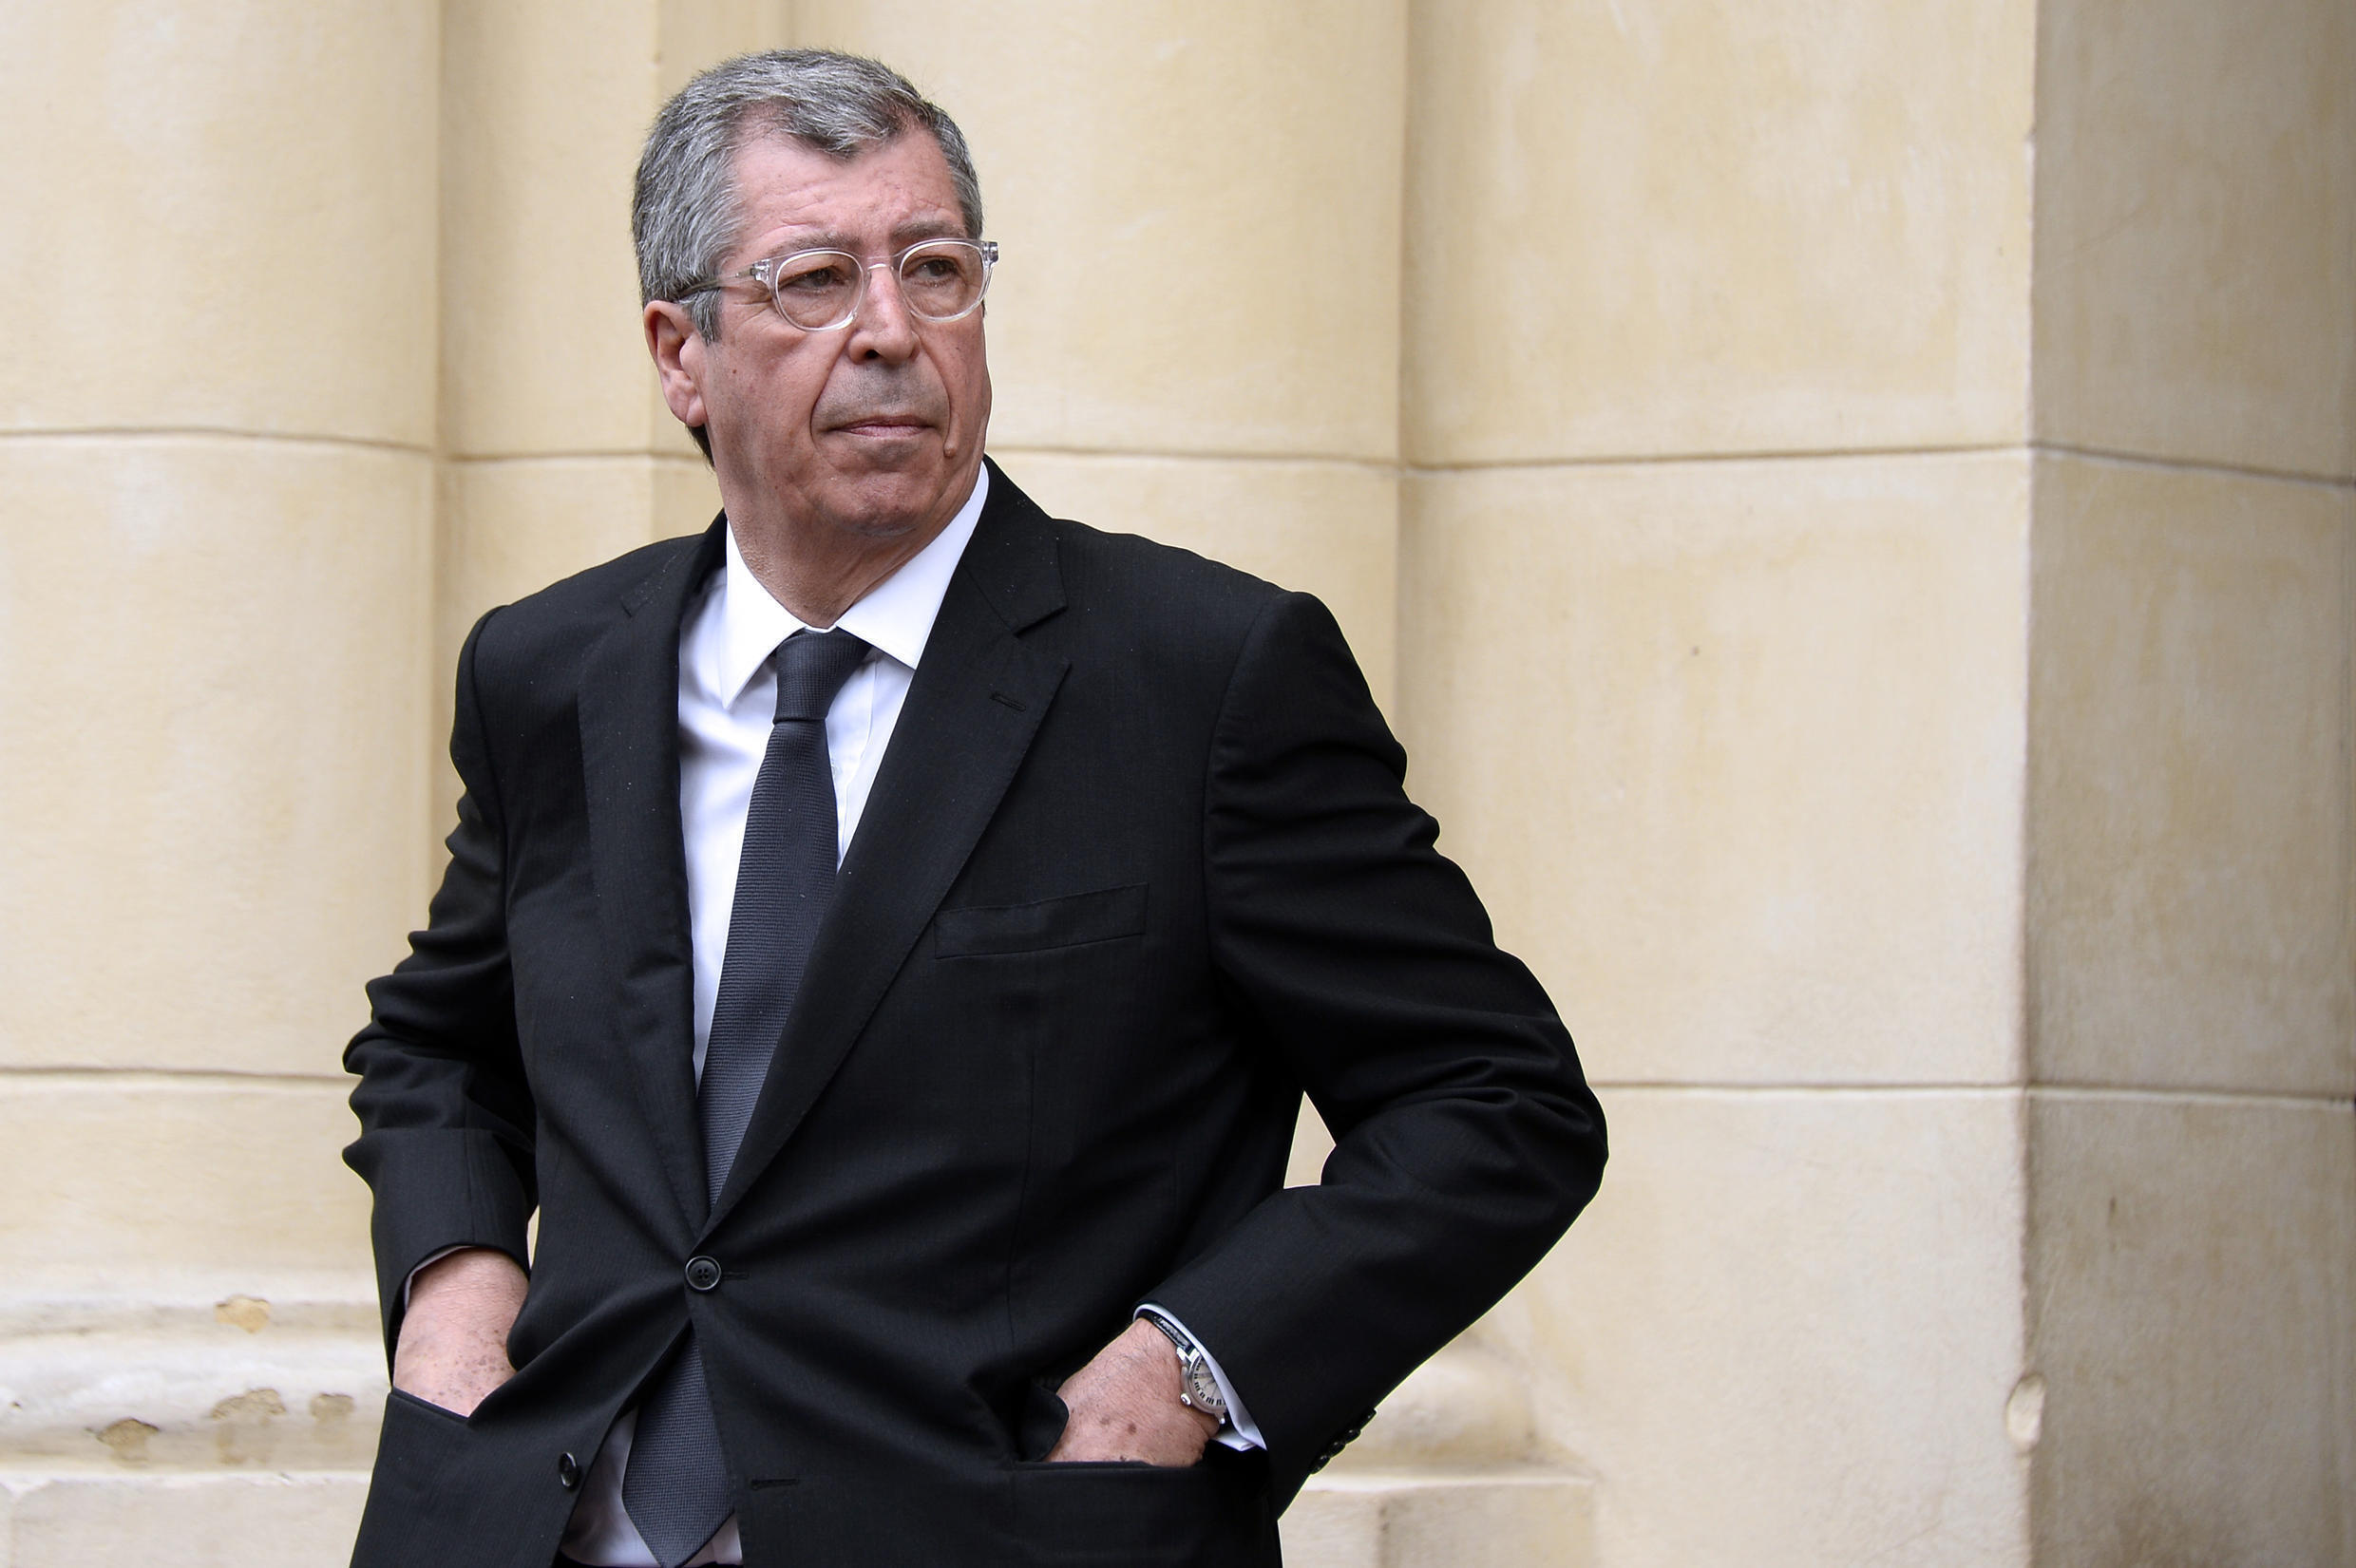 Patrick Balkany before his legal marathon and imprisonment on fraud and money-laundering charges.